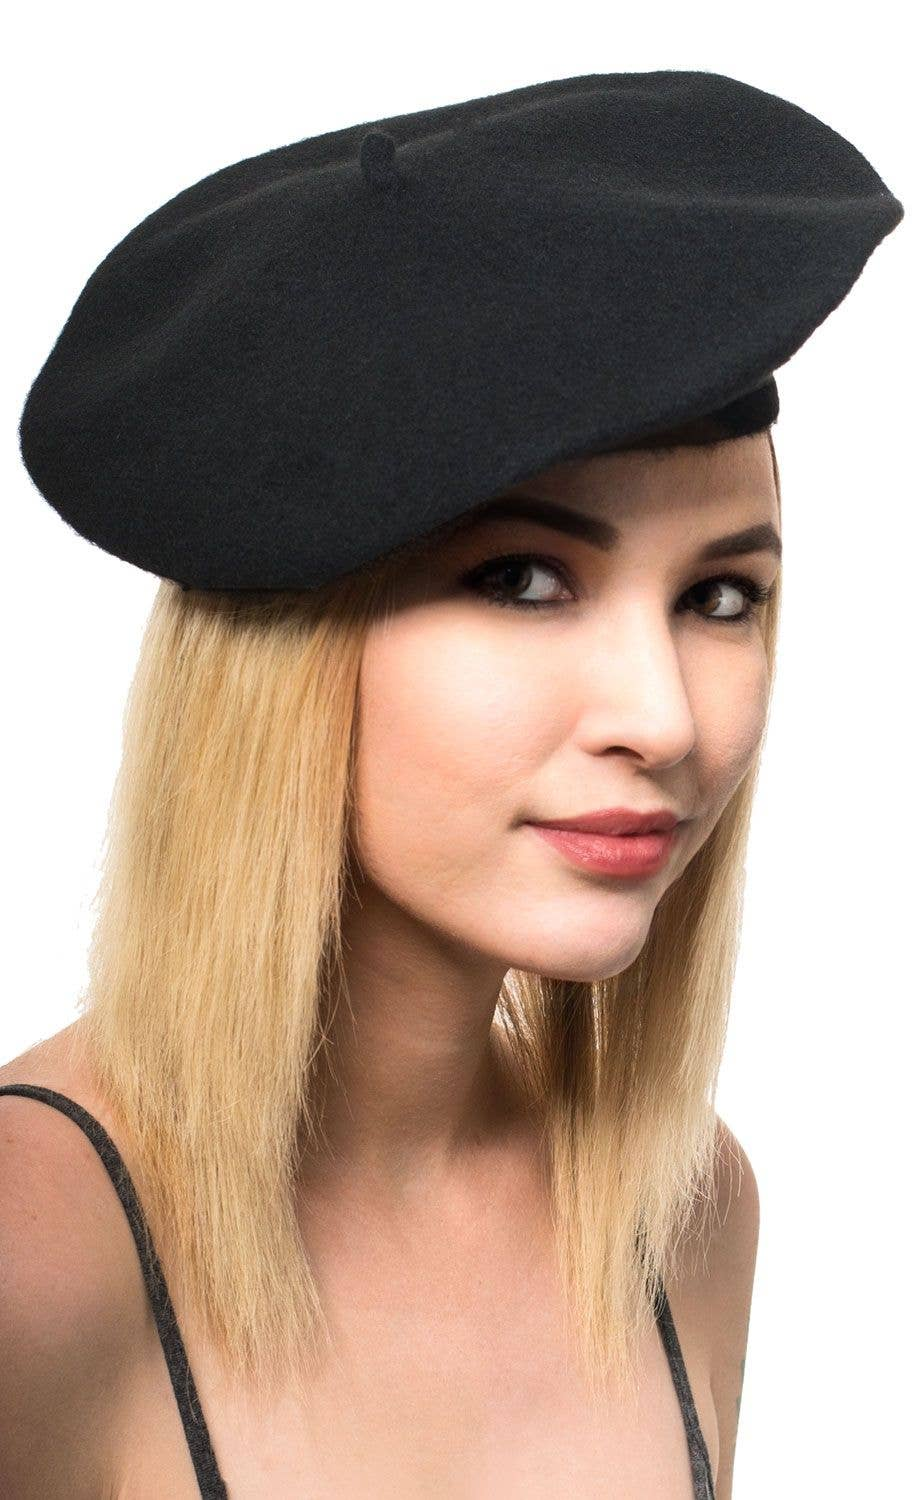 Black French Beret Costume Hat Main Image 4f878e6a662